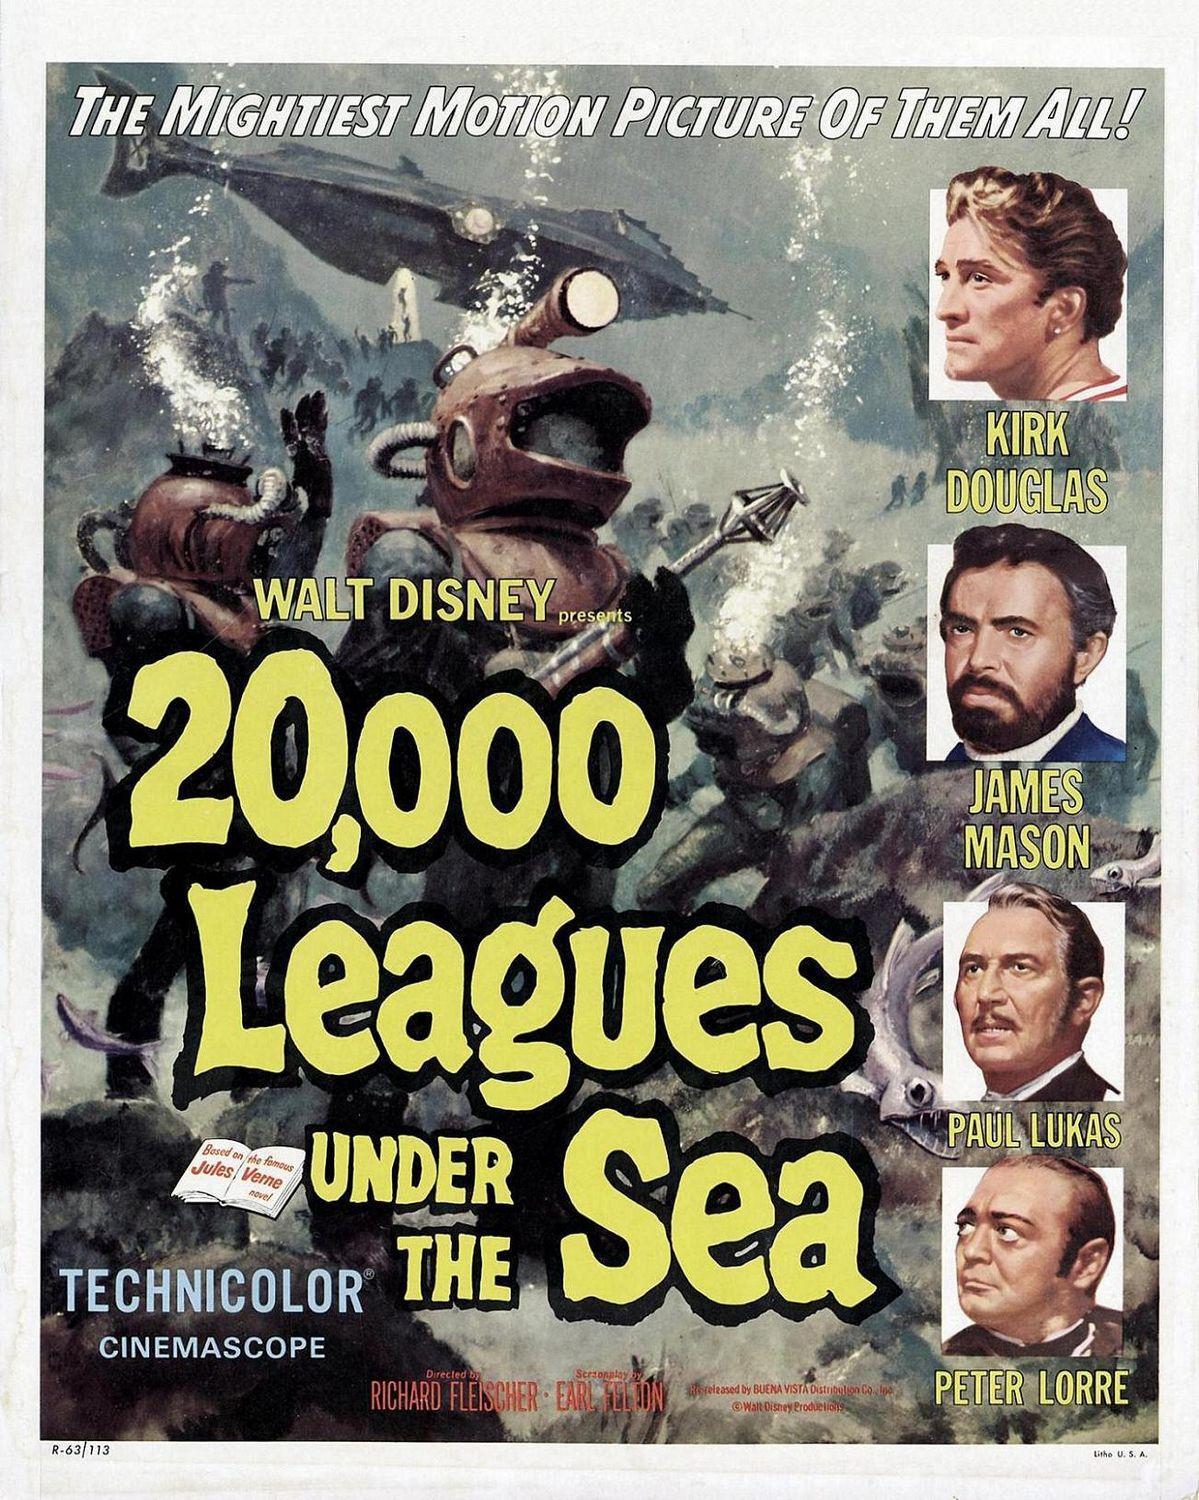 Kirk Douglas 2000 leagues under the sea